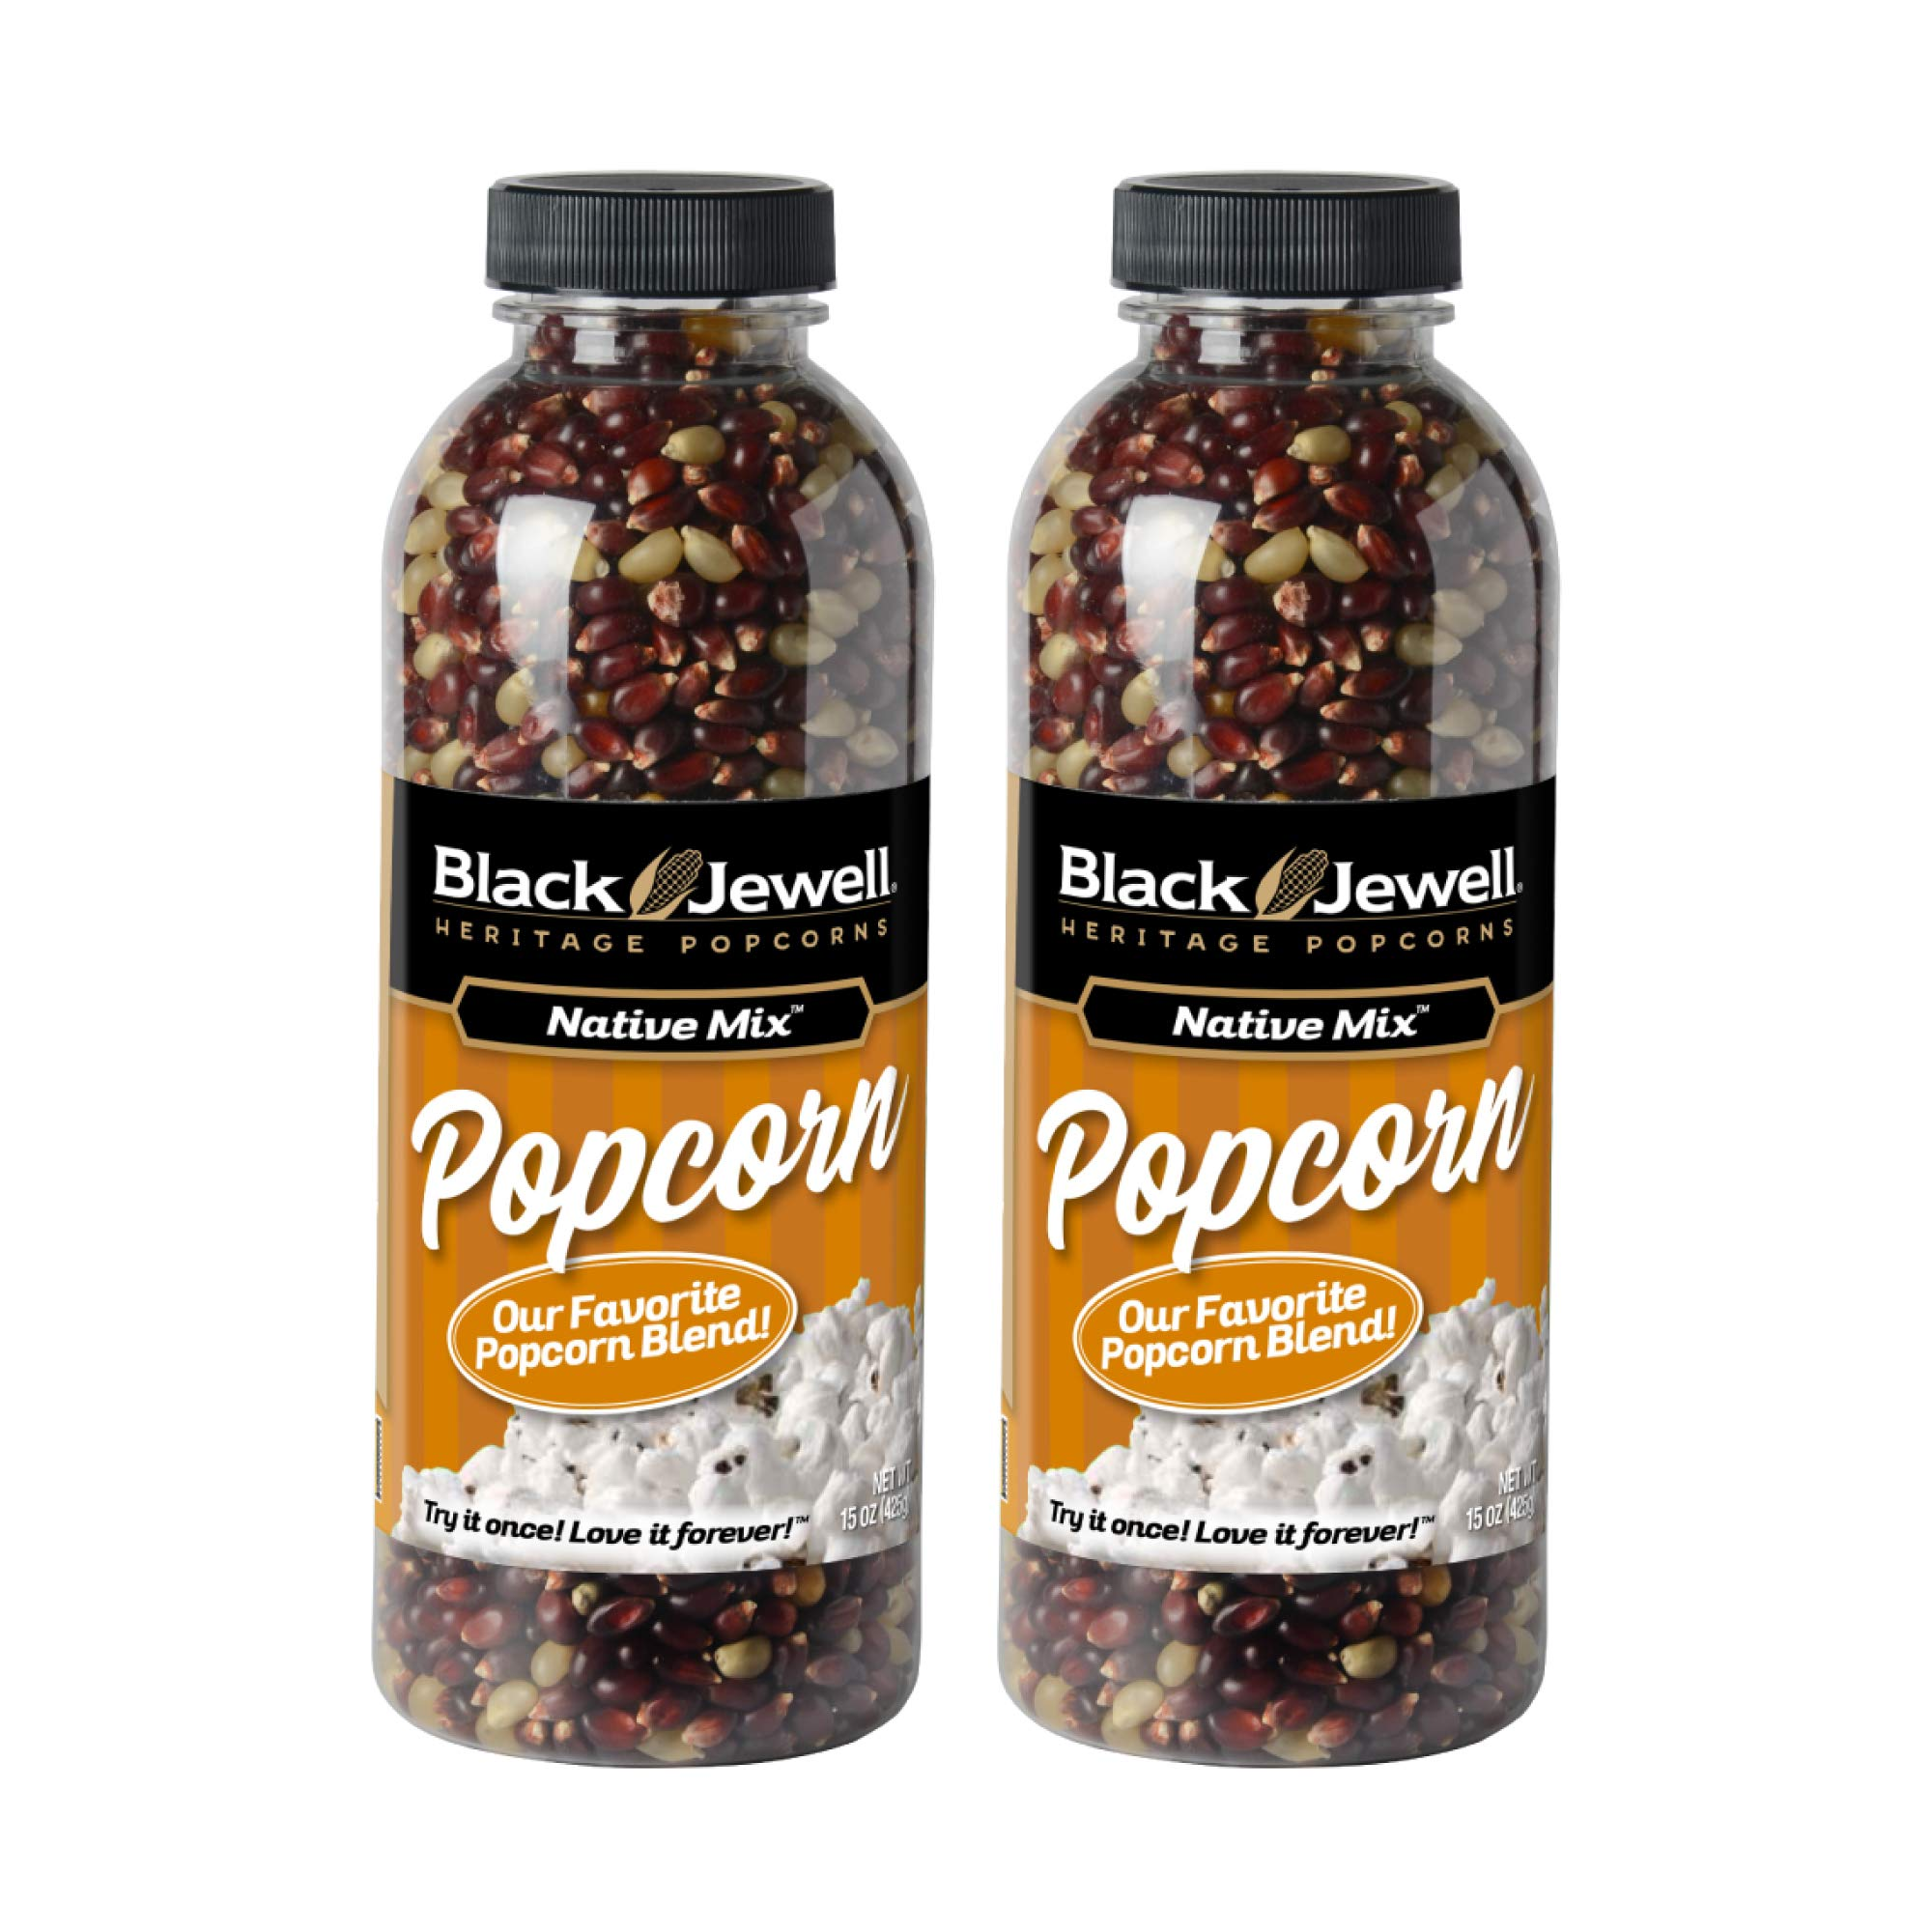 Black Jewell Native Mix Hulless Popcorn Kernels 15 Ounces (Pack of 2) by Black Jewell